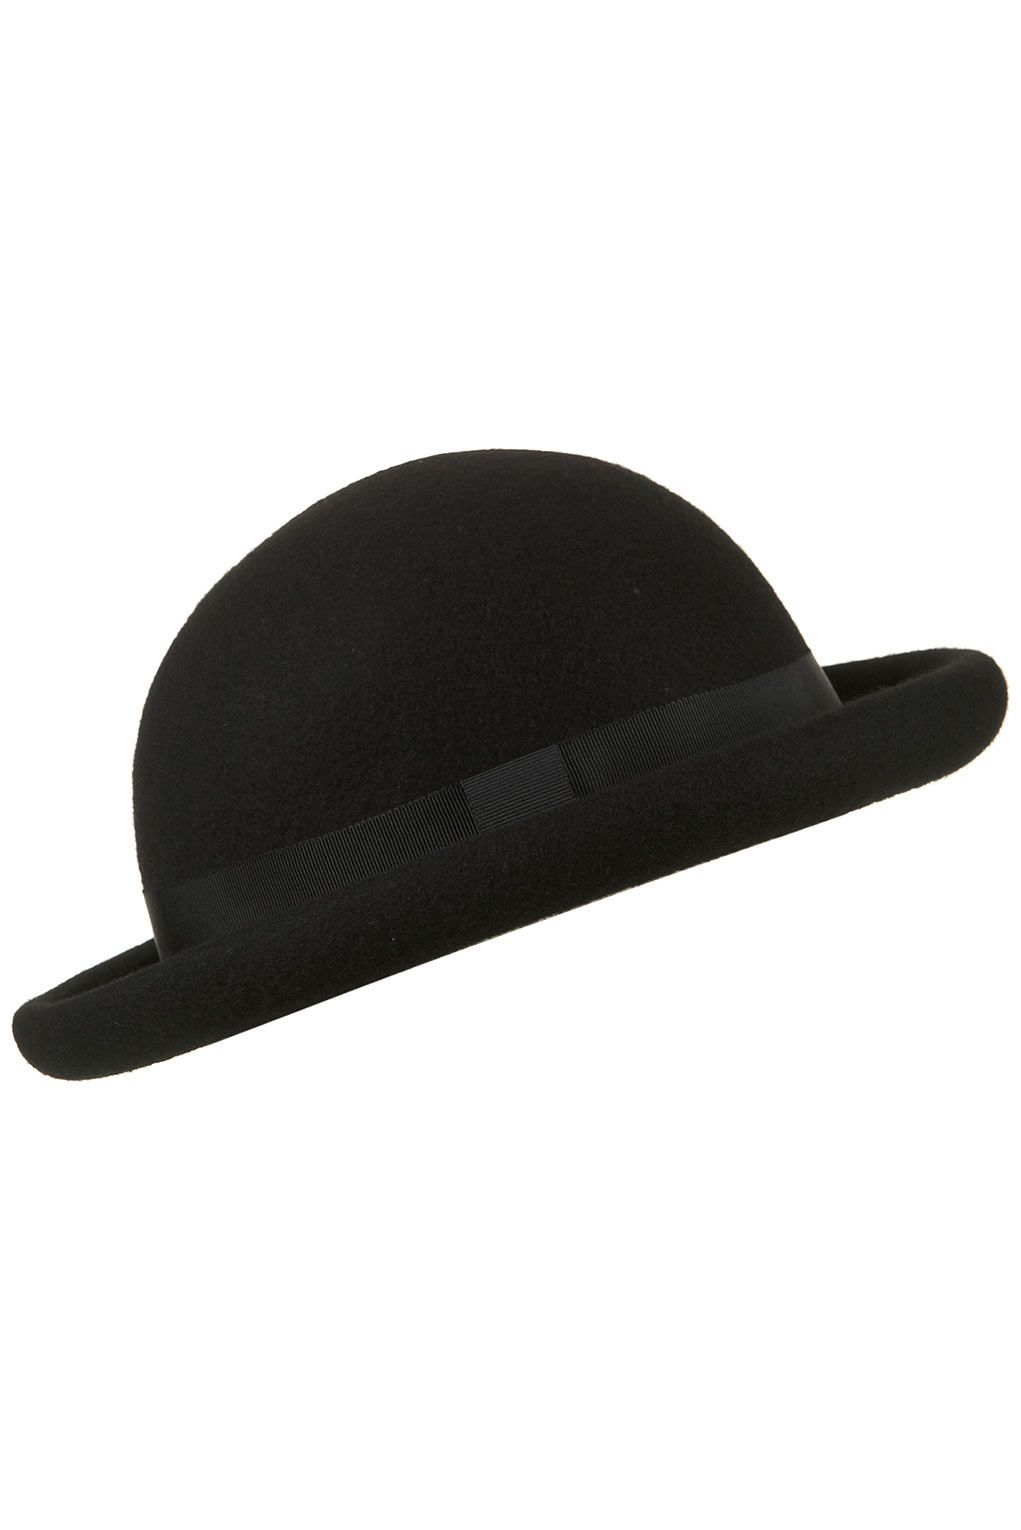 d5021aa6ca717 Black wool bowler hat with rolled brim